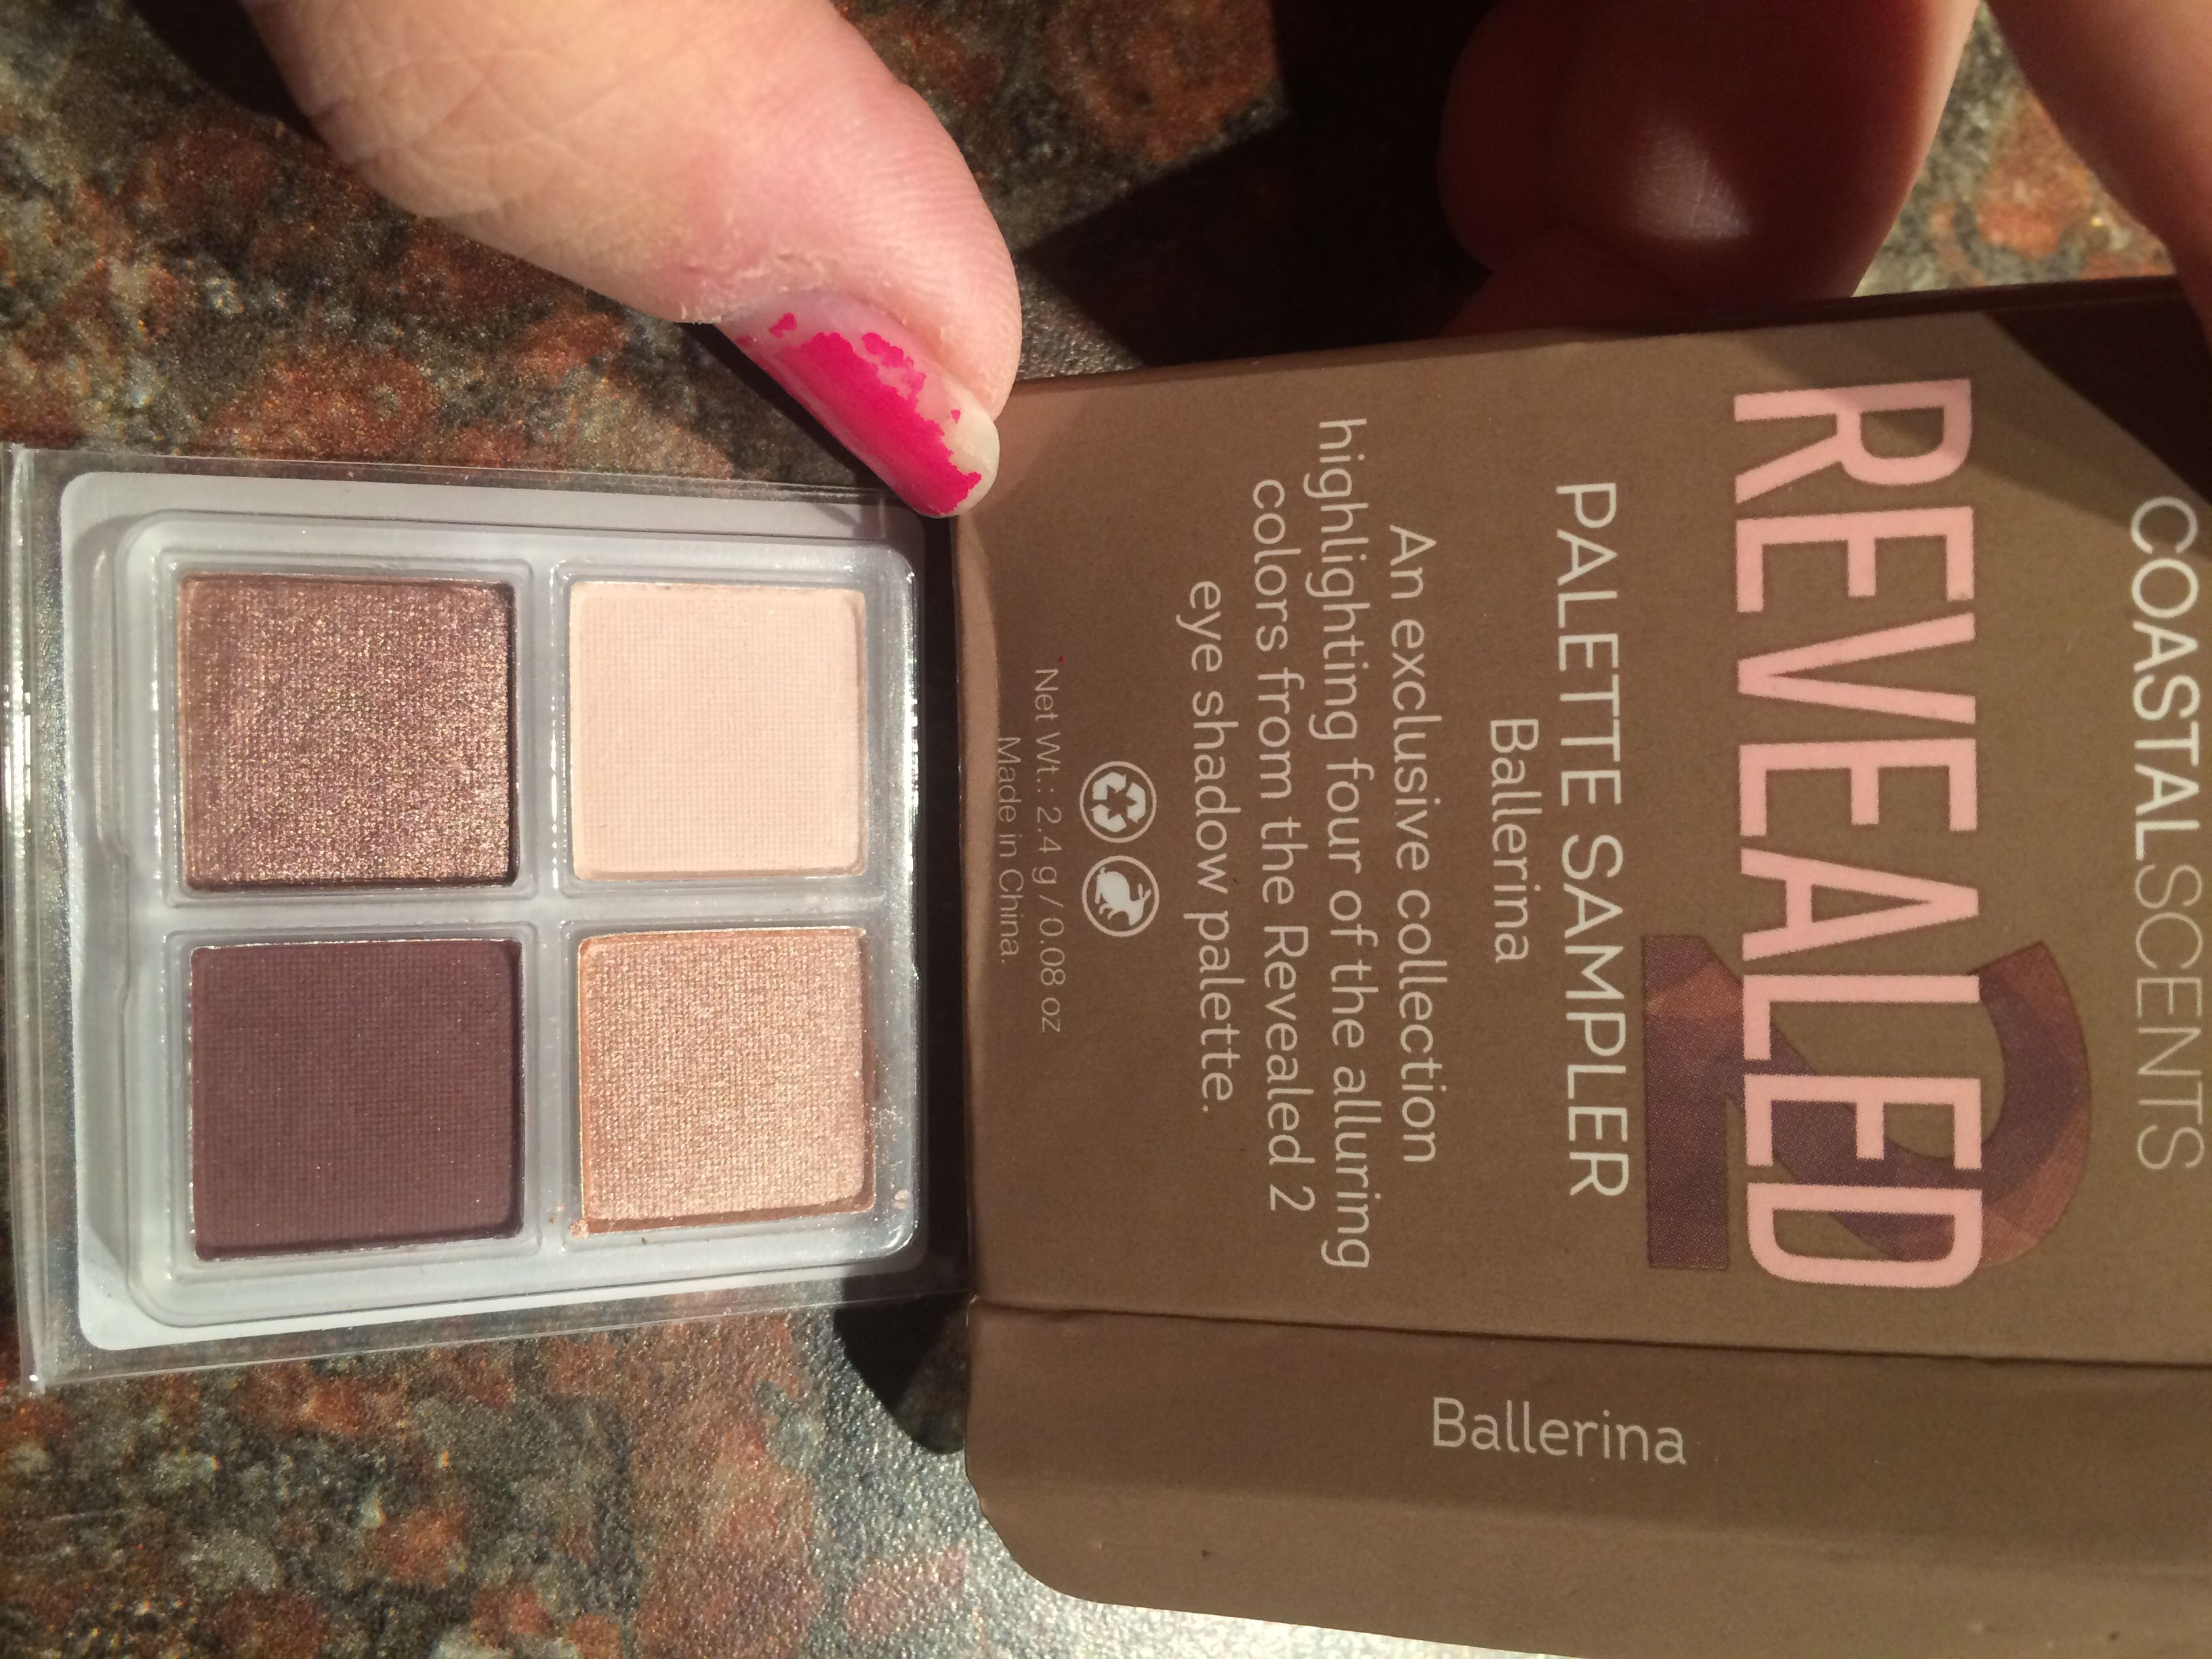 Coastal Scents Revealed Palette Sampler In Ballerina